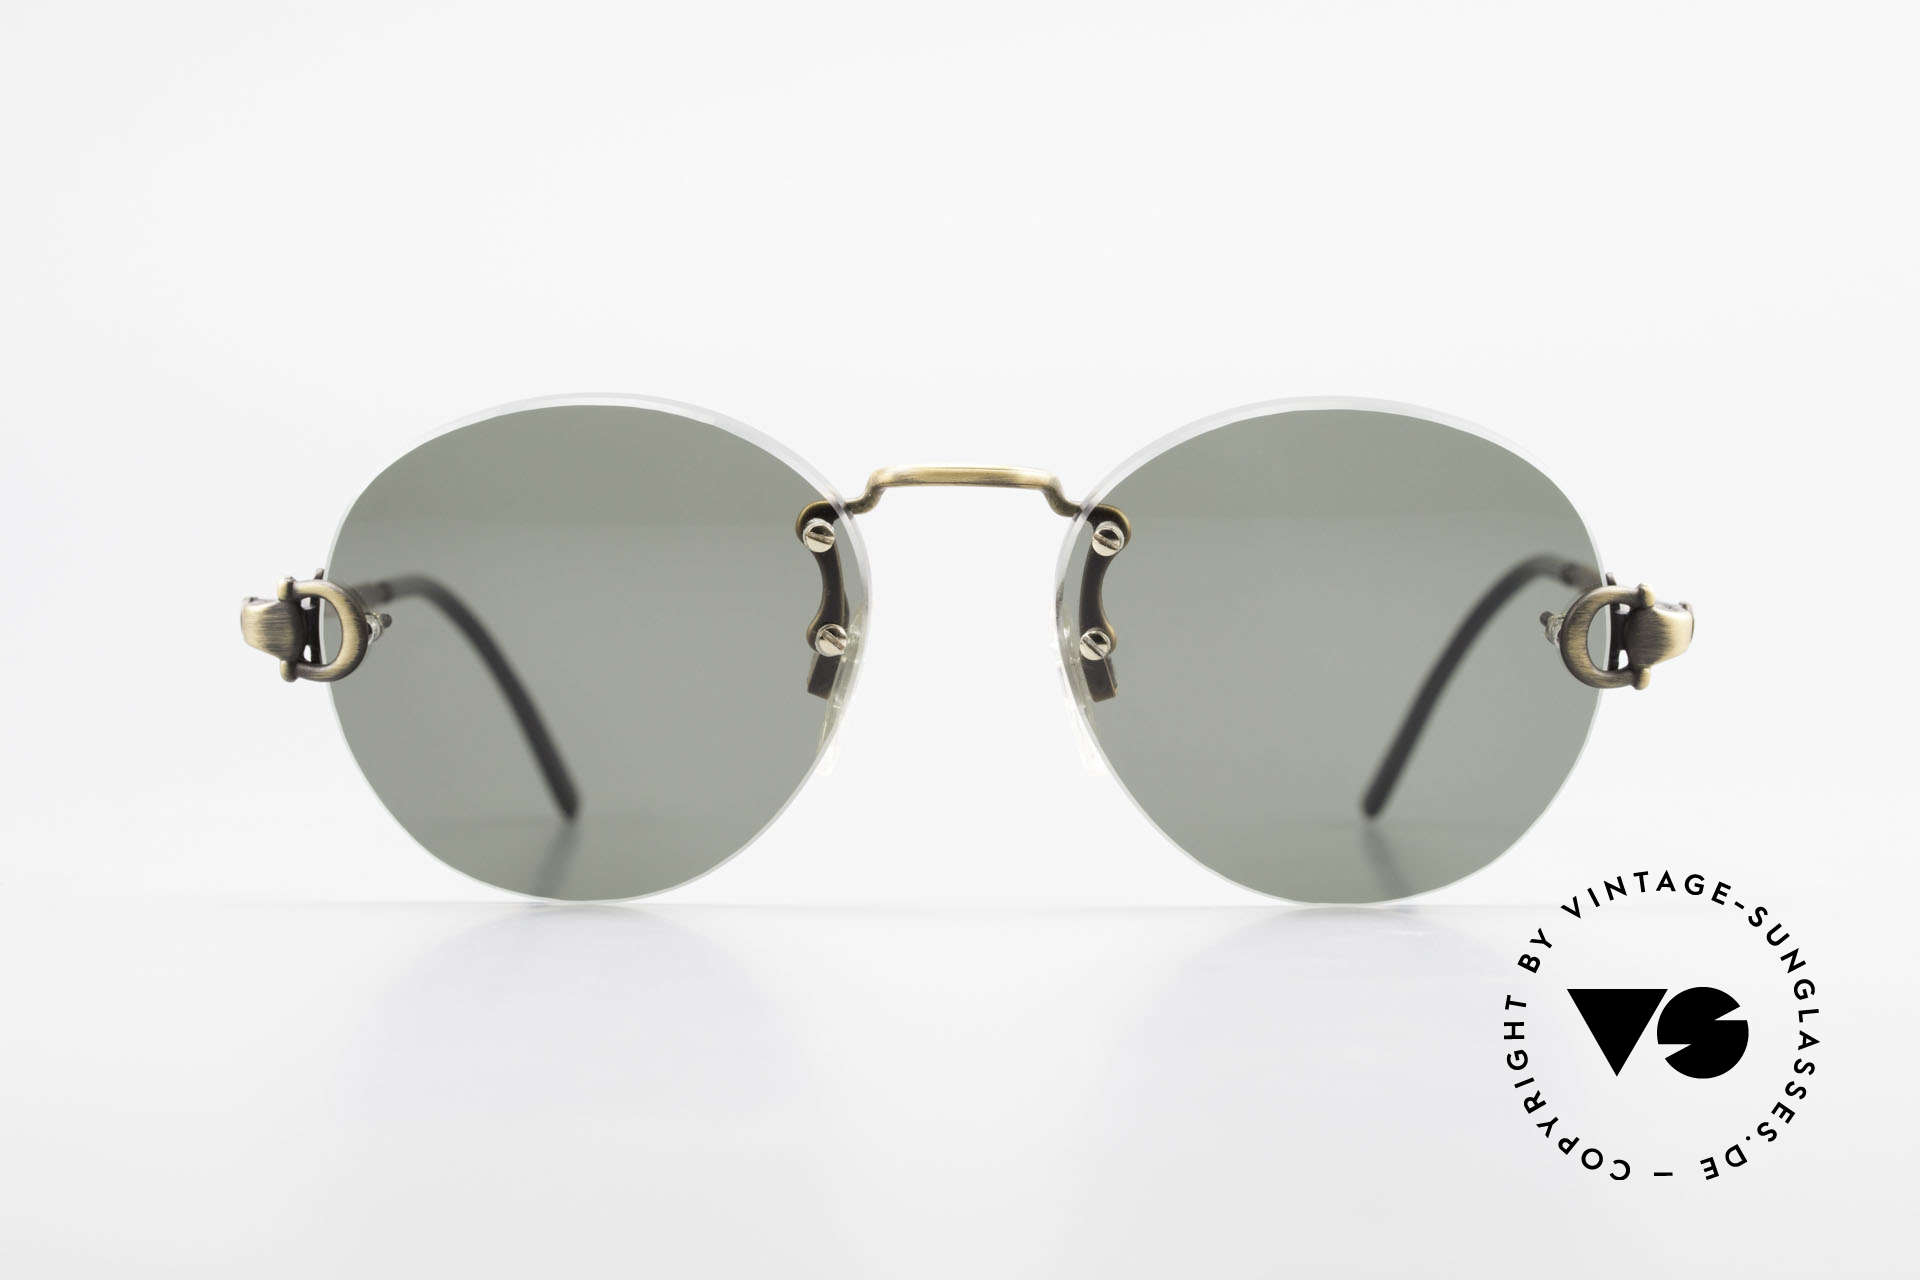 Gucci 2223 Rimless Round Sunglasses, round unisex model = suitable for ladies and gents, Made for Men and Women